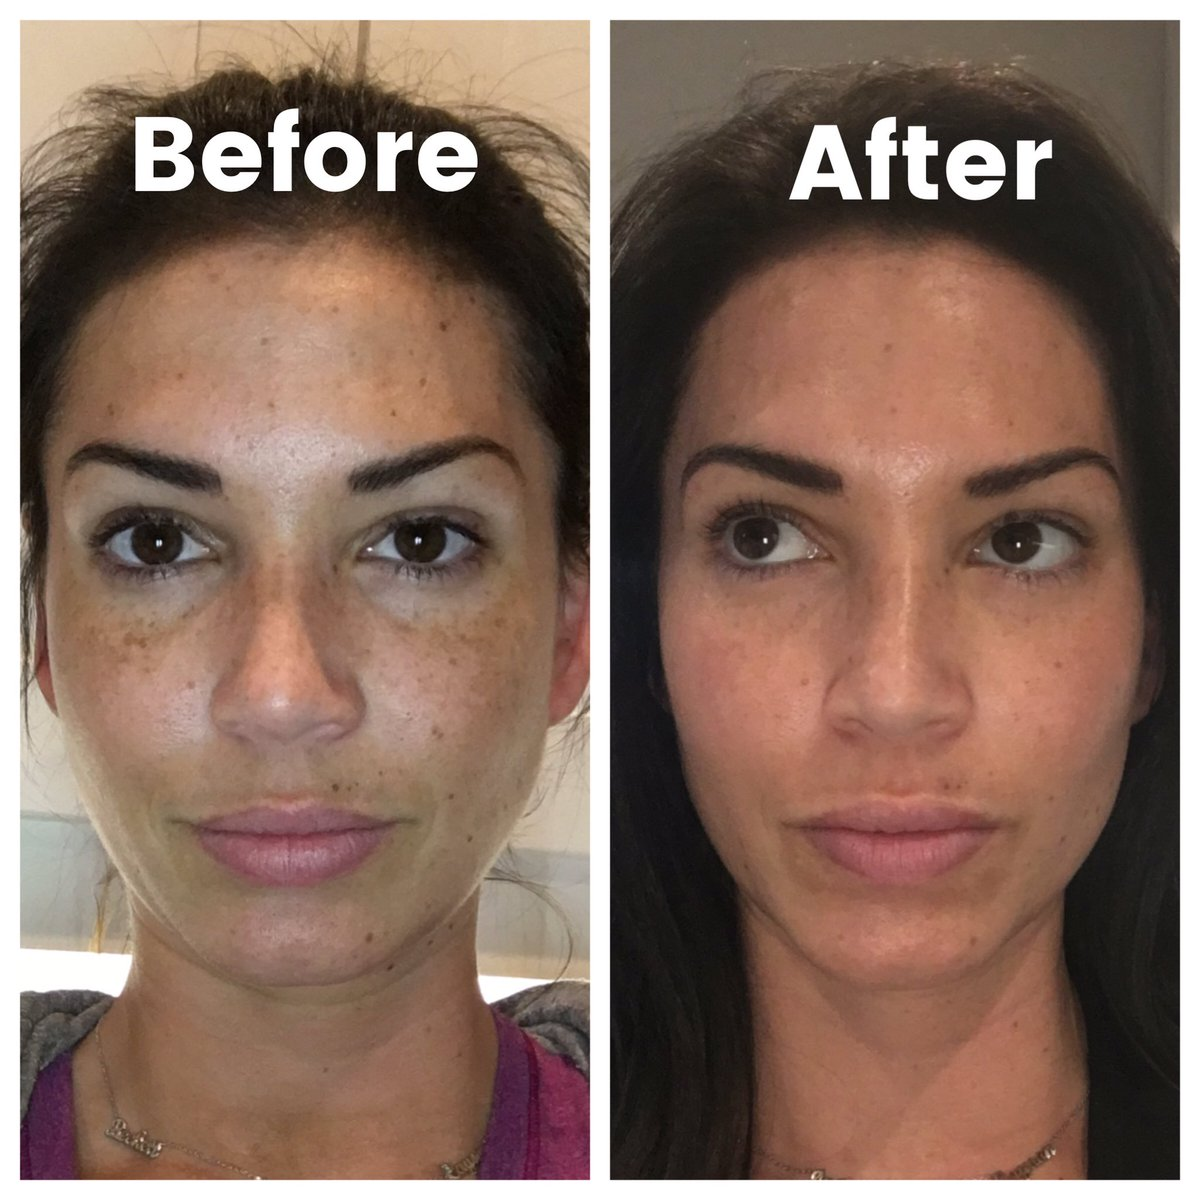 When Does Peeling Start After Photofacial?